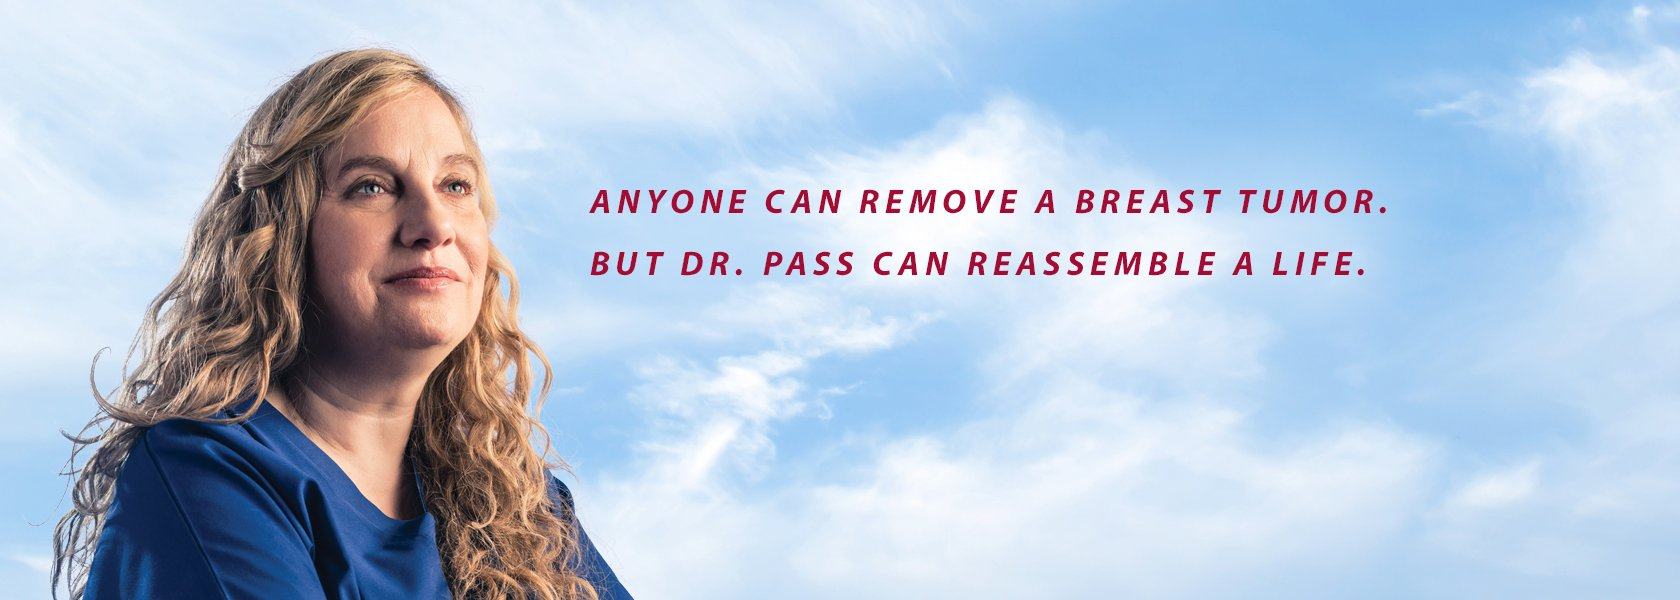 Anyone can remove a breast tumor. But Dr. Pass can reassemble a life.